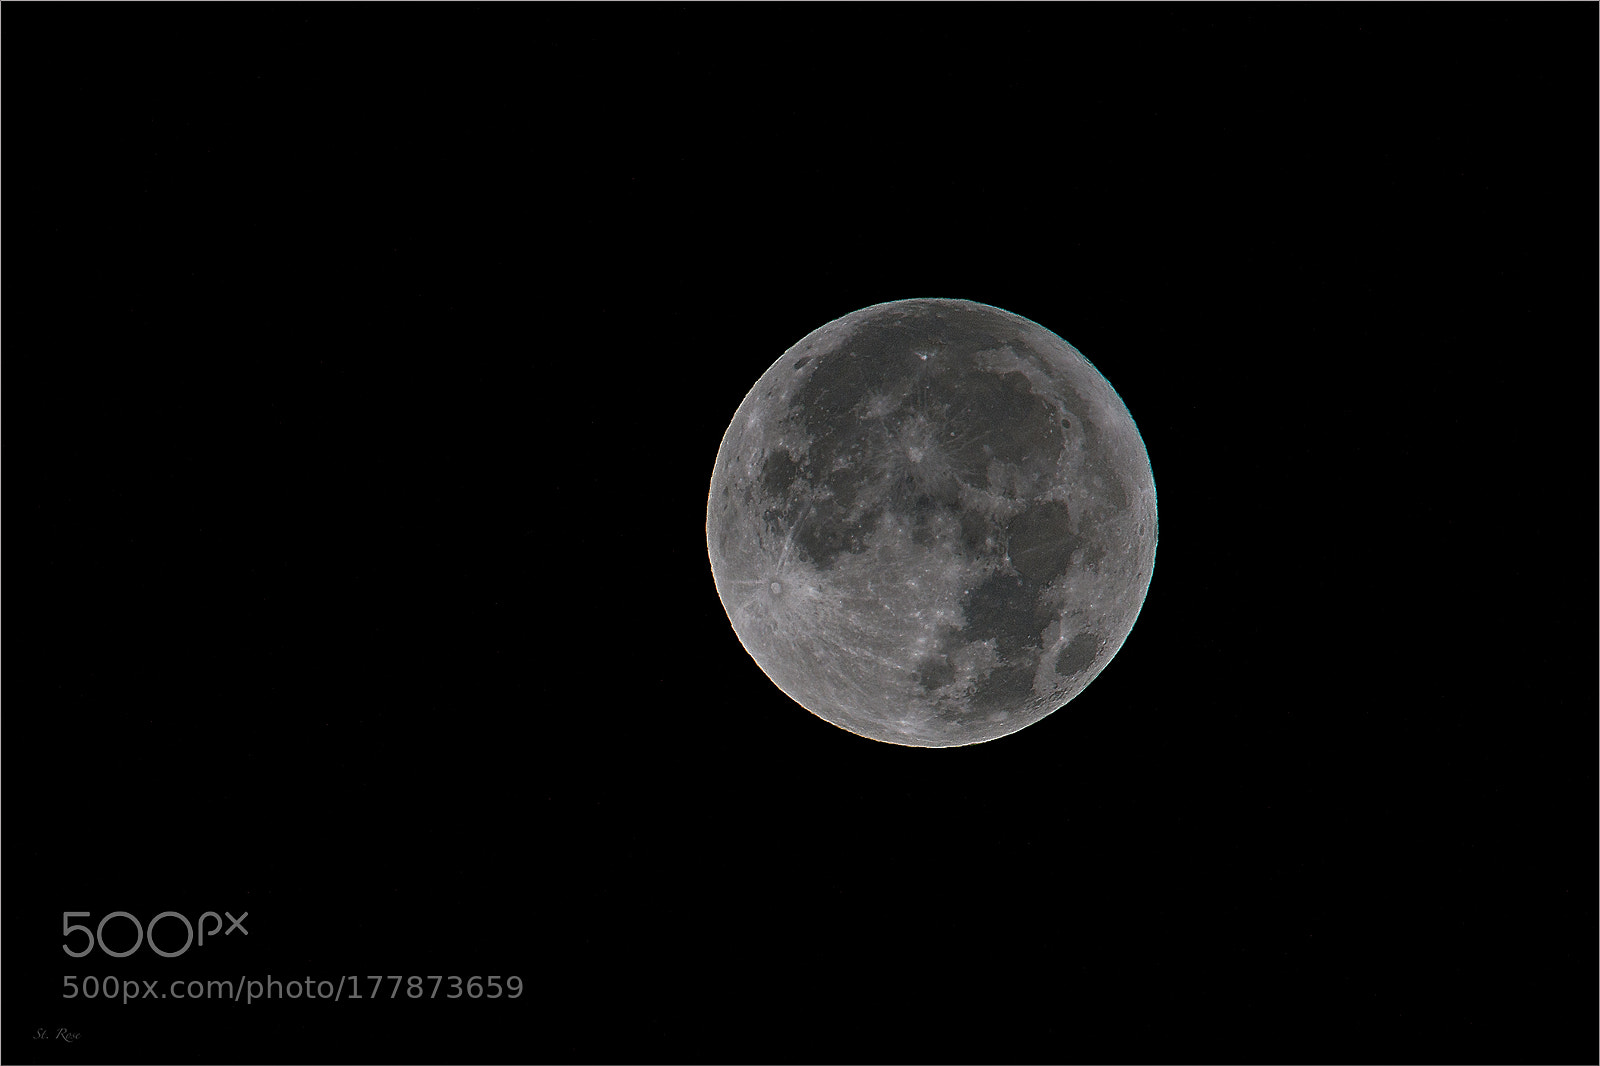 Dark Night, Sony ILCE-6000, Tamron SP AF 200-500mm F5.0-6.3 Di LD IF